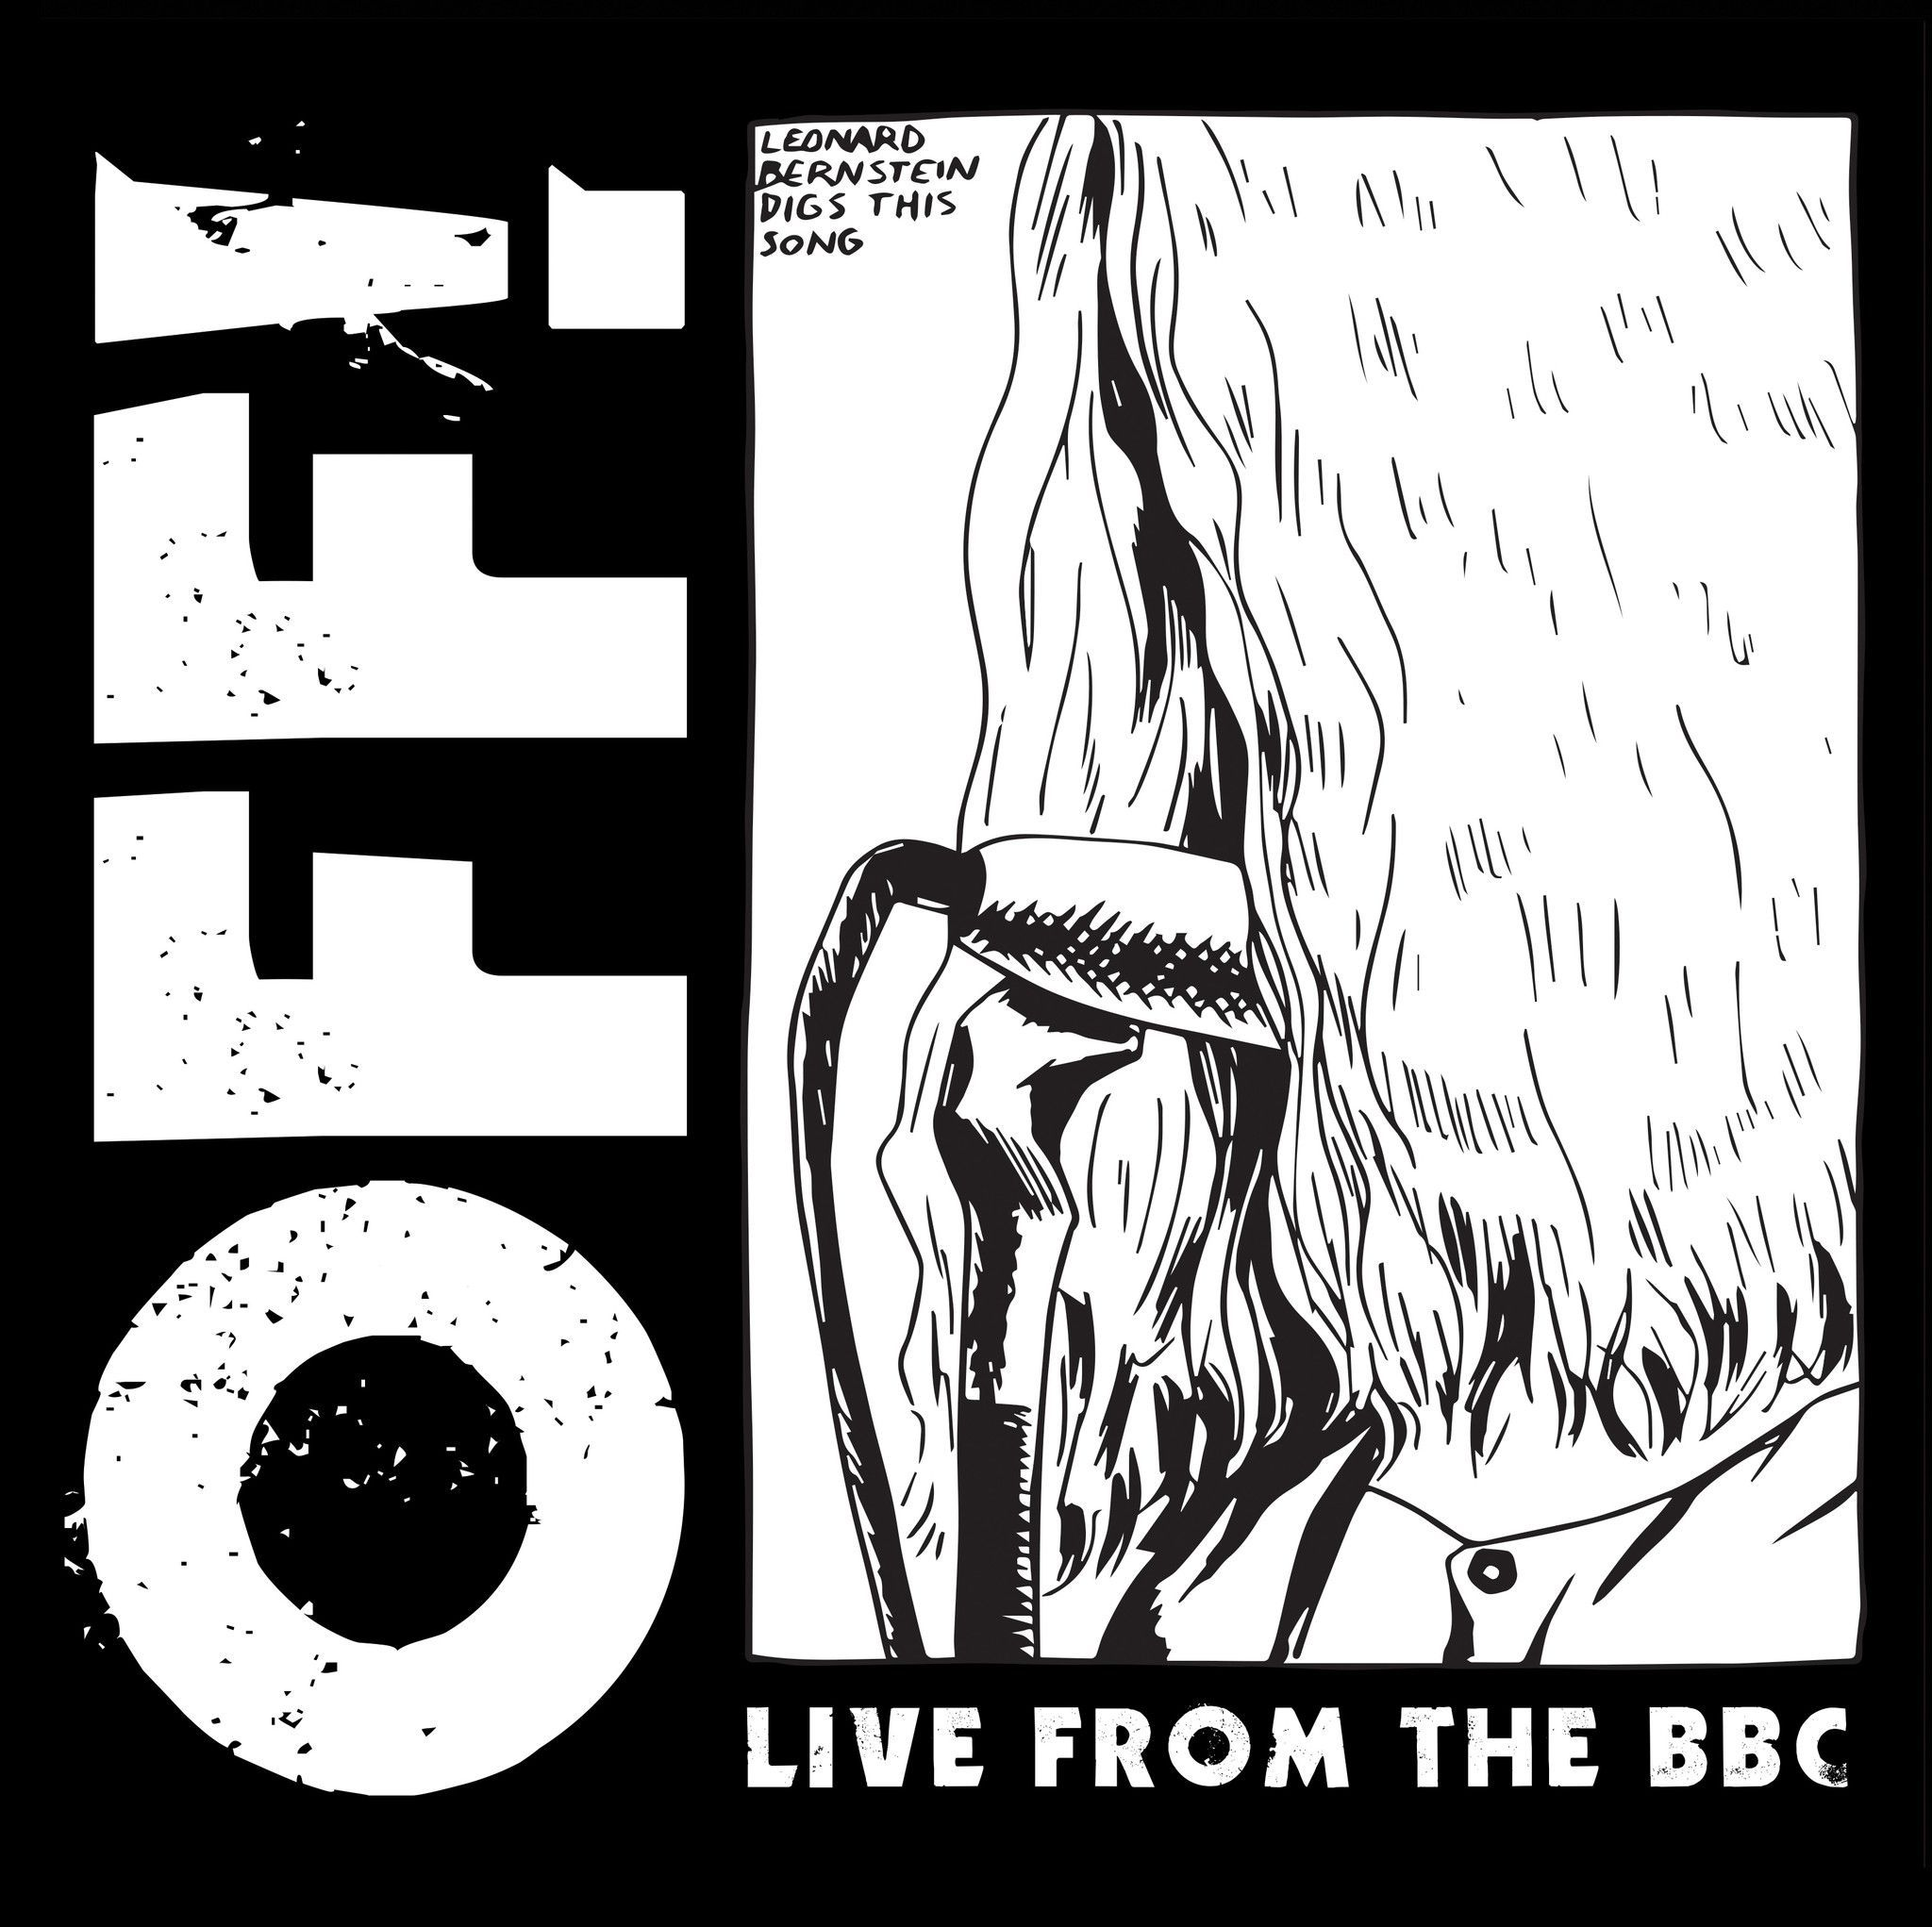 Off Live From The Bbc Vinyl 10 Record Store Day Products Vinyl Music Lp Vinyl Vinyl Records